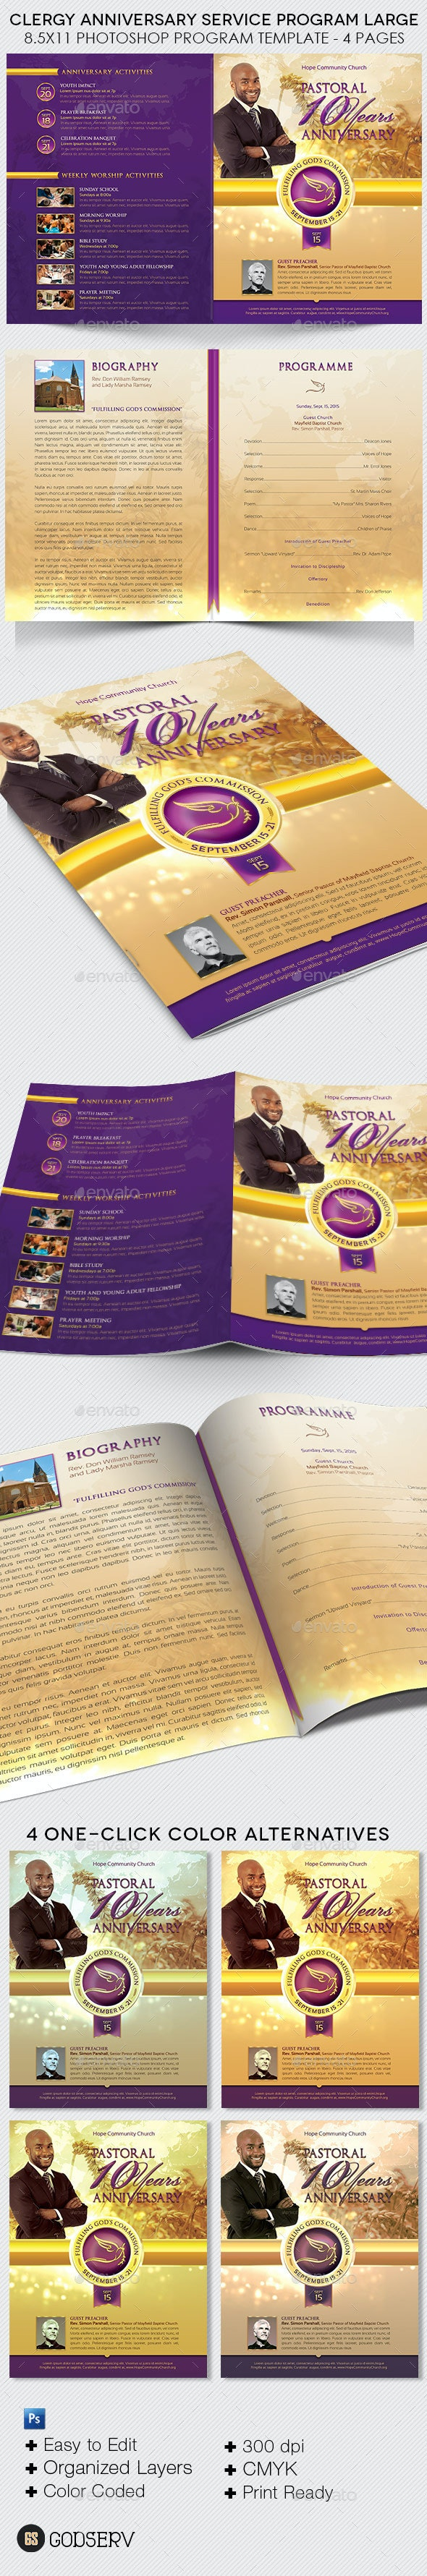 Clergy Anniversary Service Program Large Template - Informational Brochures